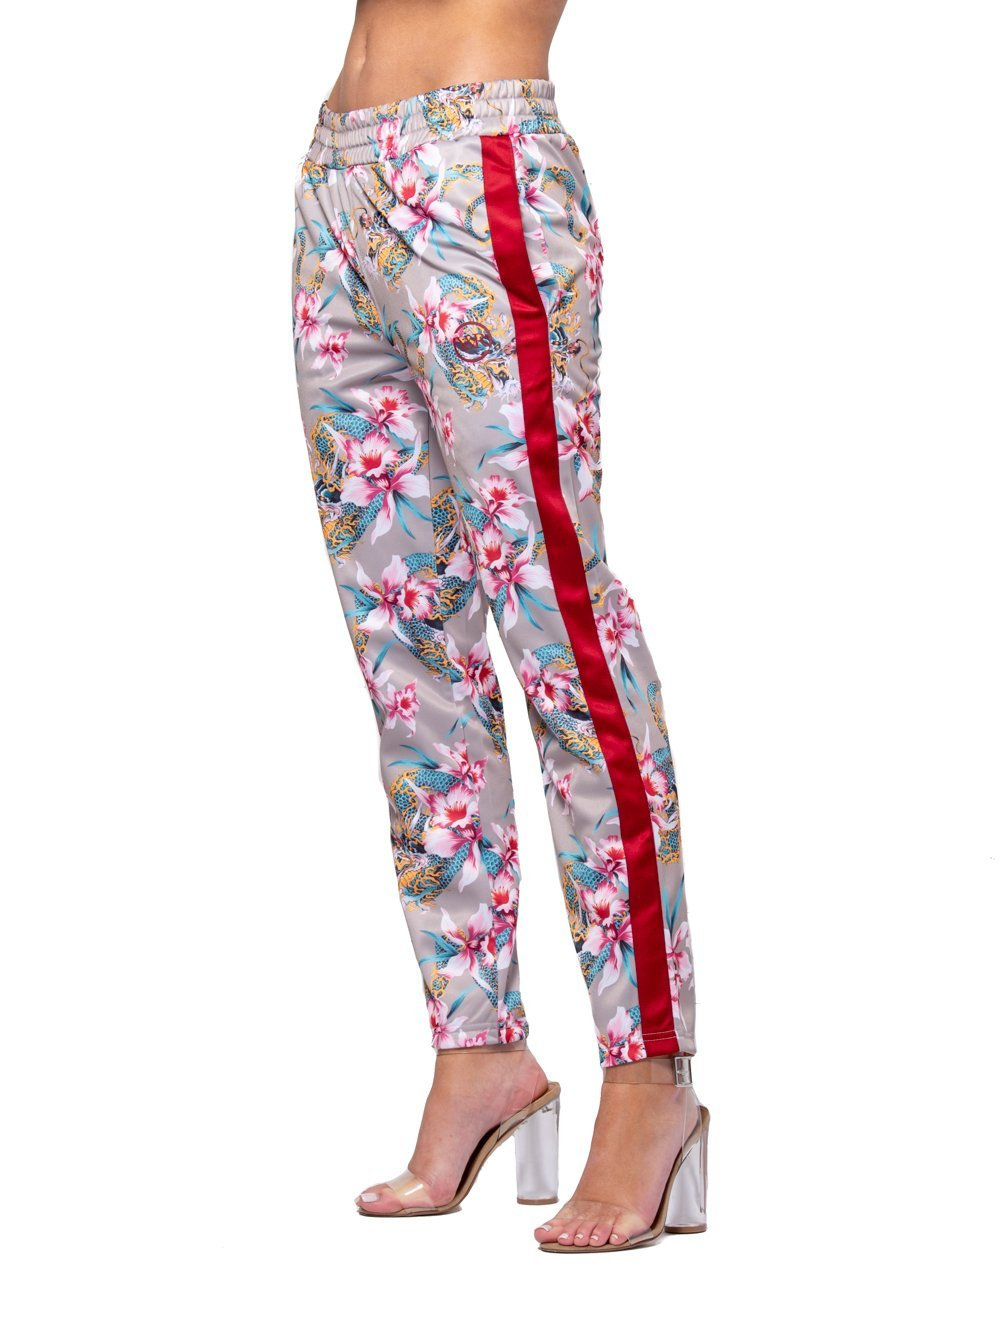 Reckless Girls Womens - Bottoms - Pants Monstruo Jr Track Pants - Red/Pink